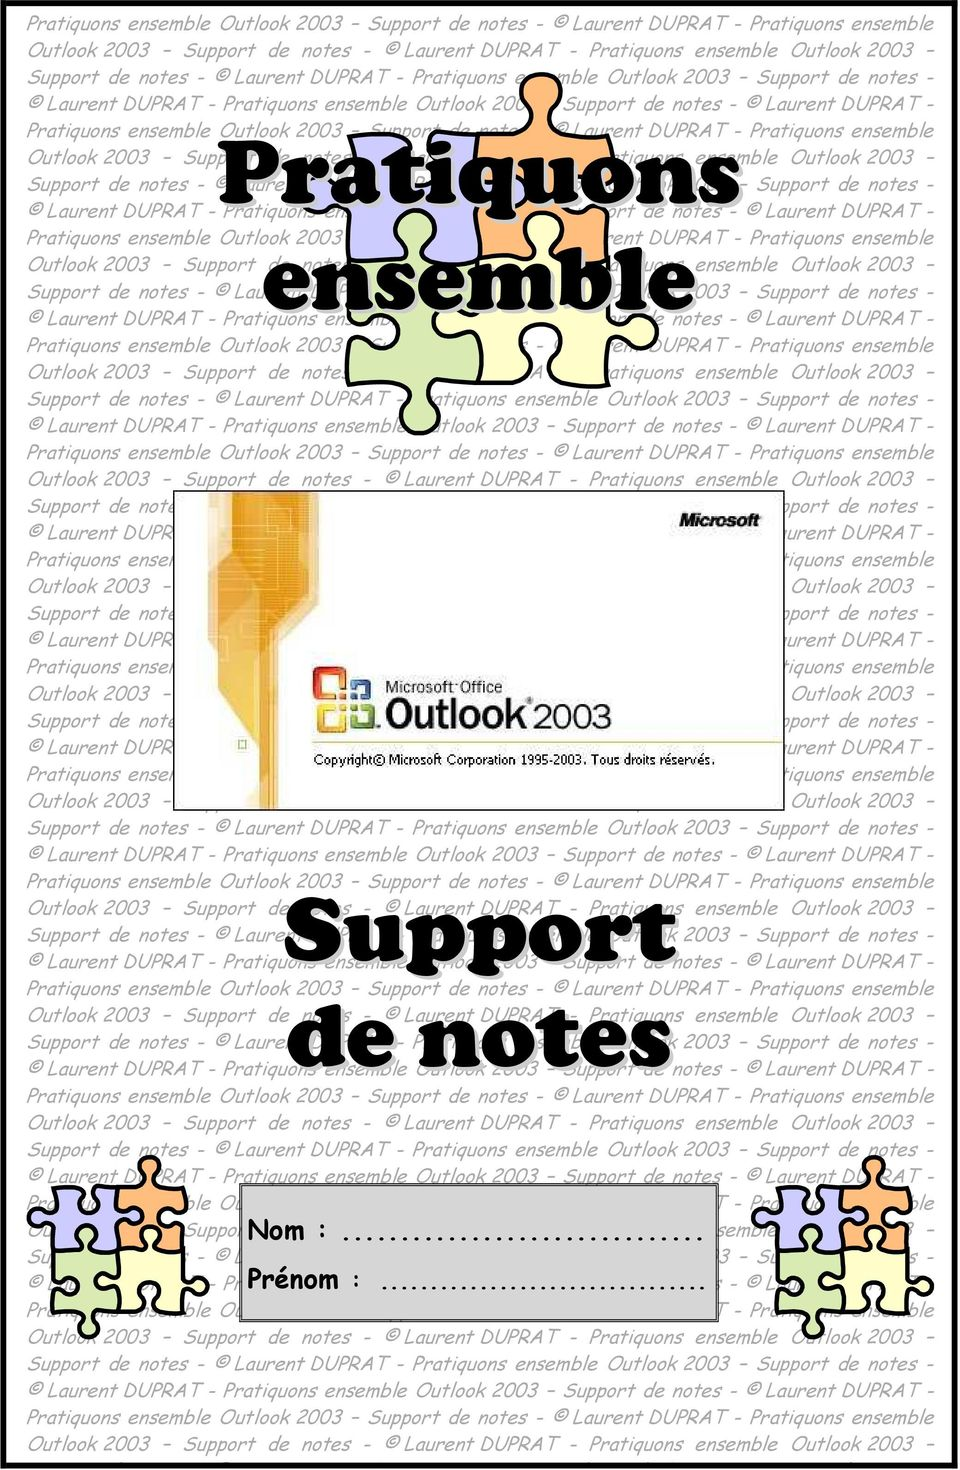 notes - Laurent DUPRAT - Pratiquons Outlook 2003 Support de notes - Support de notes Outlook 2003 Support Nom de notes :.